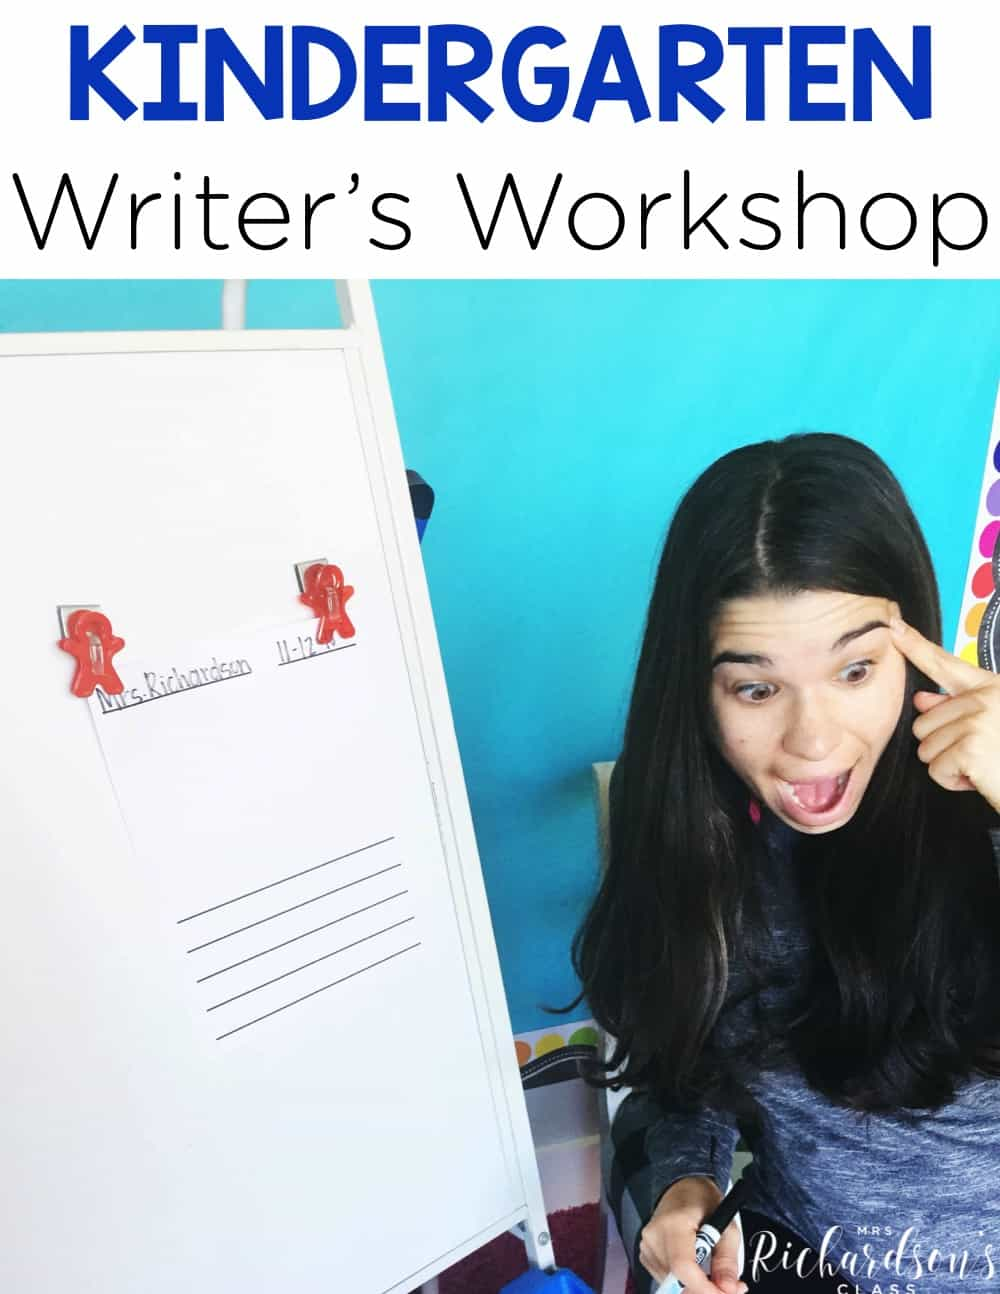 Are you looking to begin writer's workshop in your kindergarten class, but aren't sure where to begin? Are you uncertain of what each component should look like? This blog post shares each component of writer's workshop and how you can easily implement them into a kindergarten classroom.